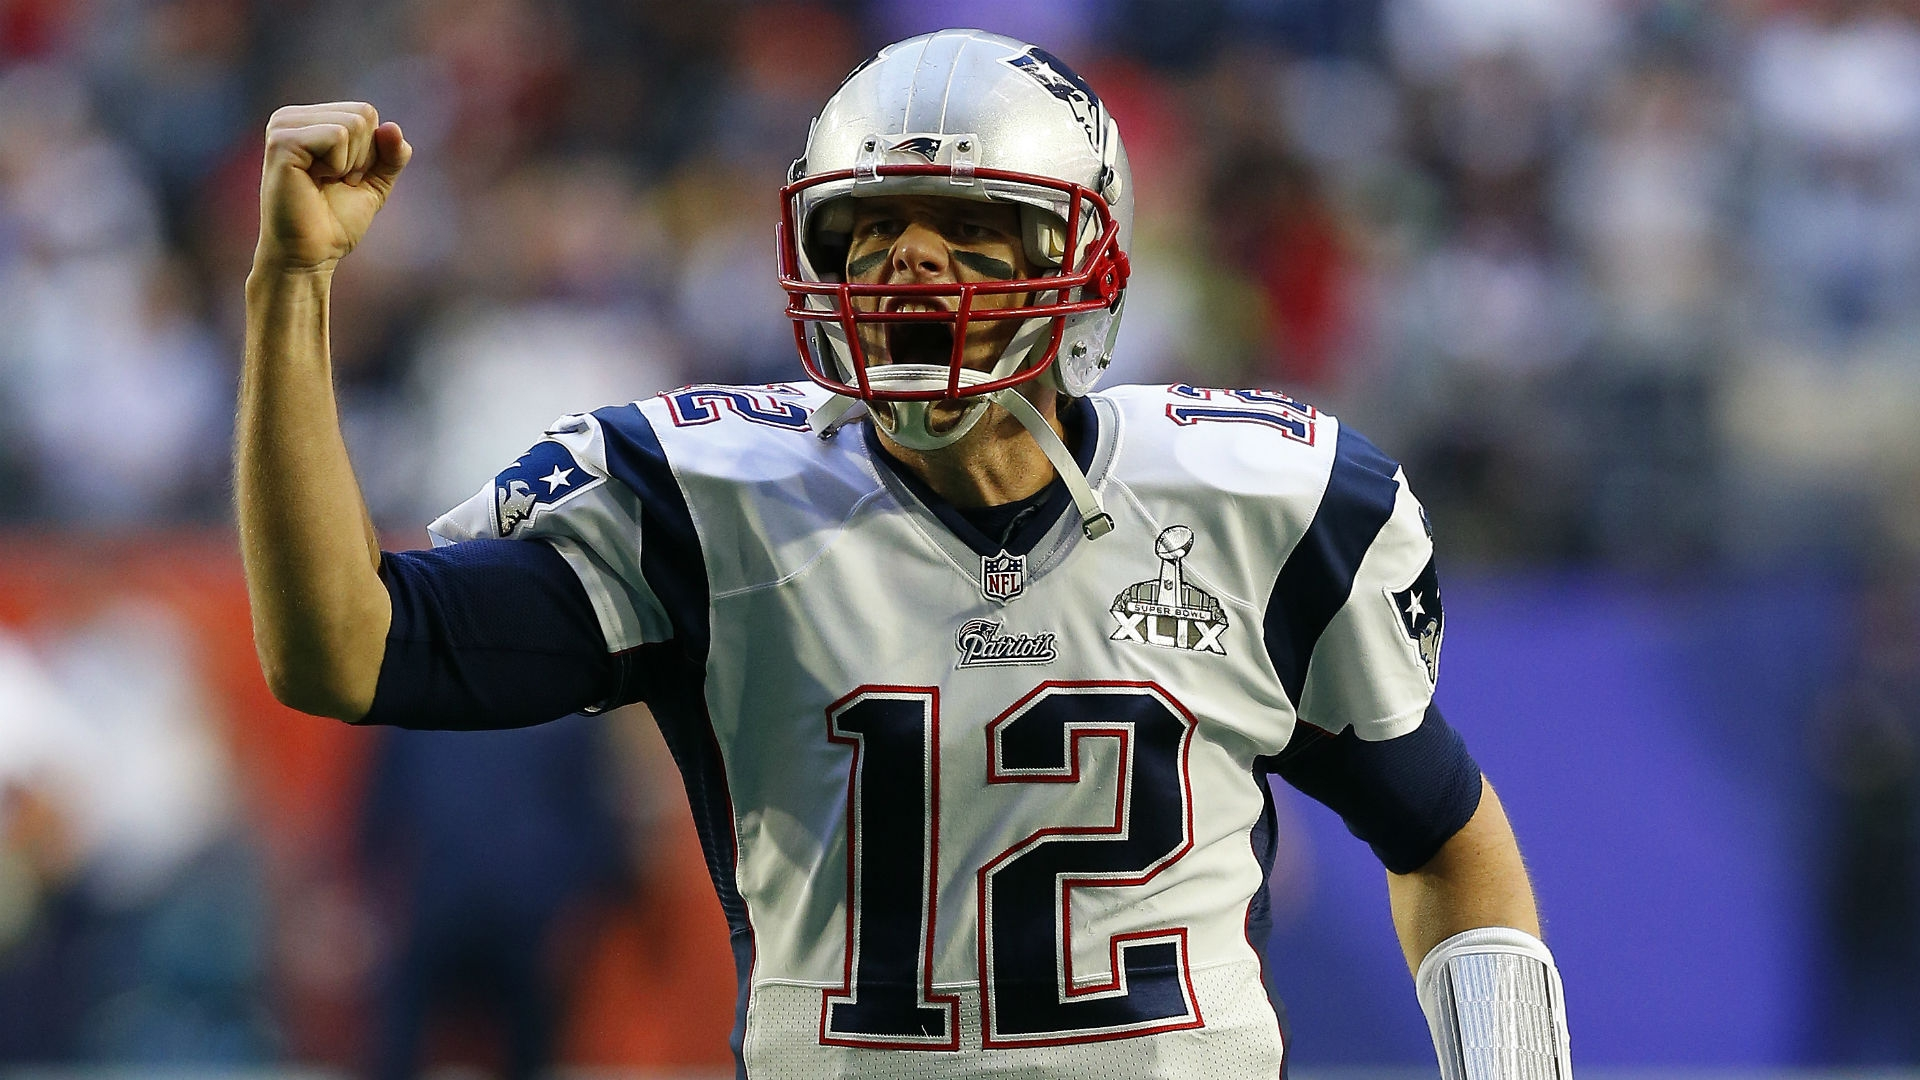 Tom-brady-super-bowl-110916-getty-ftrjpg_b9284gwyel1i1njf0szwx516x